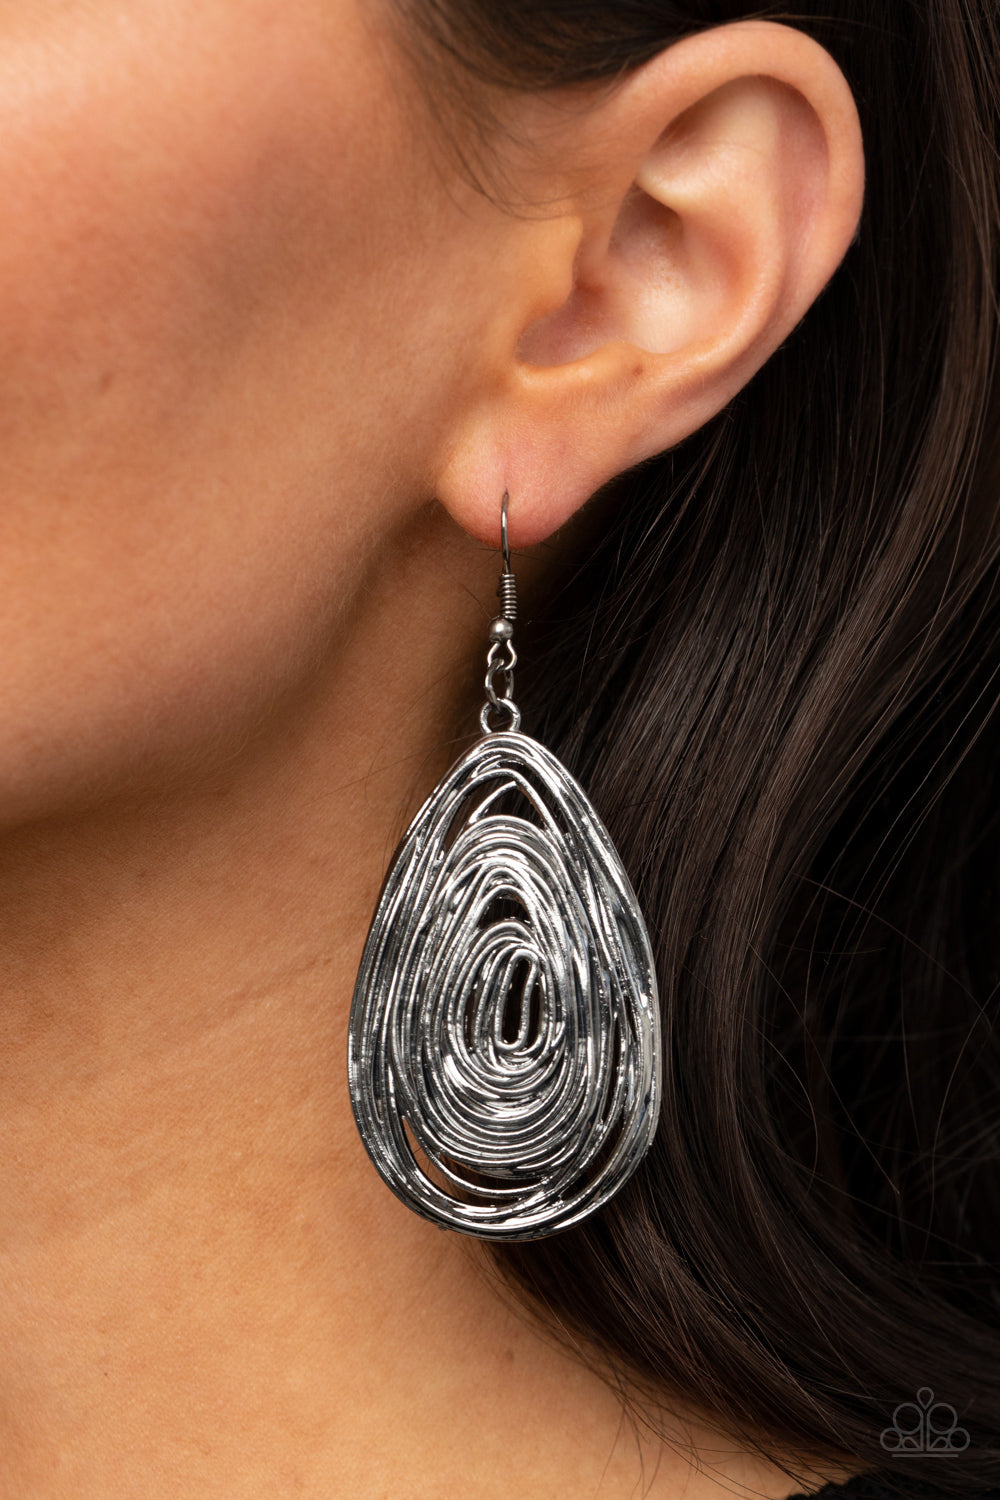 Rural Ripples - Black Earrings - Paparazzi Accessories